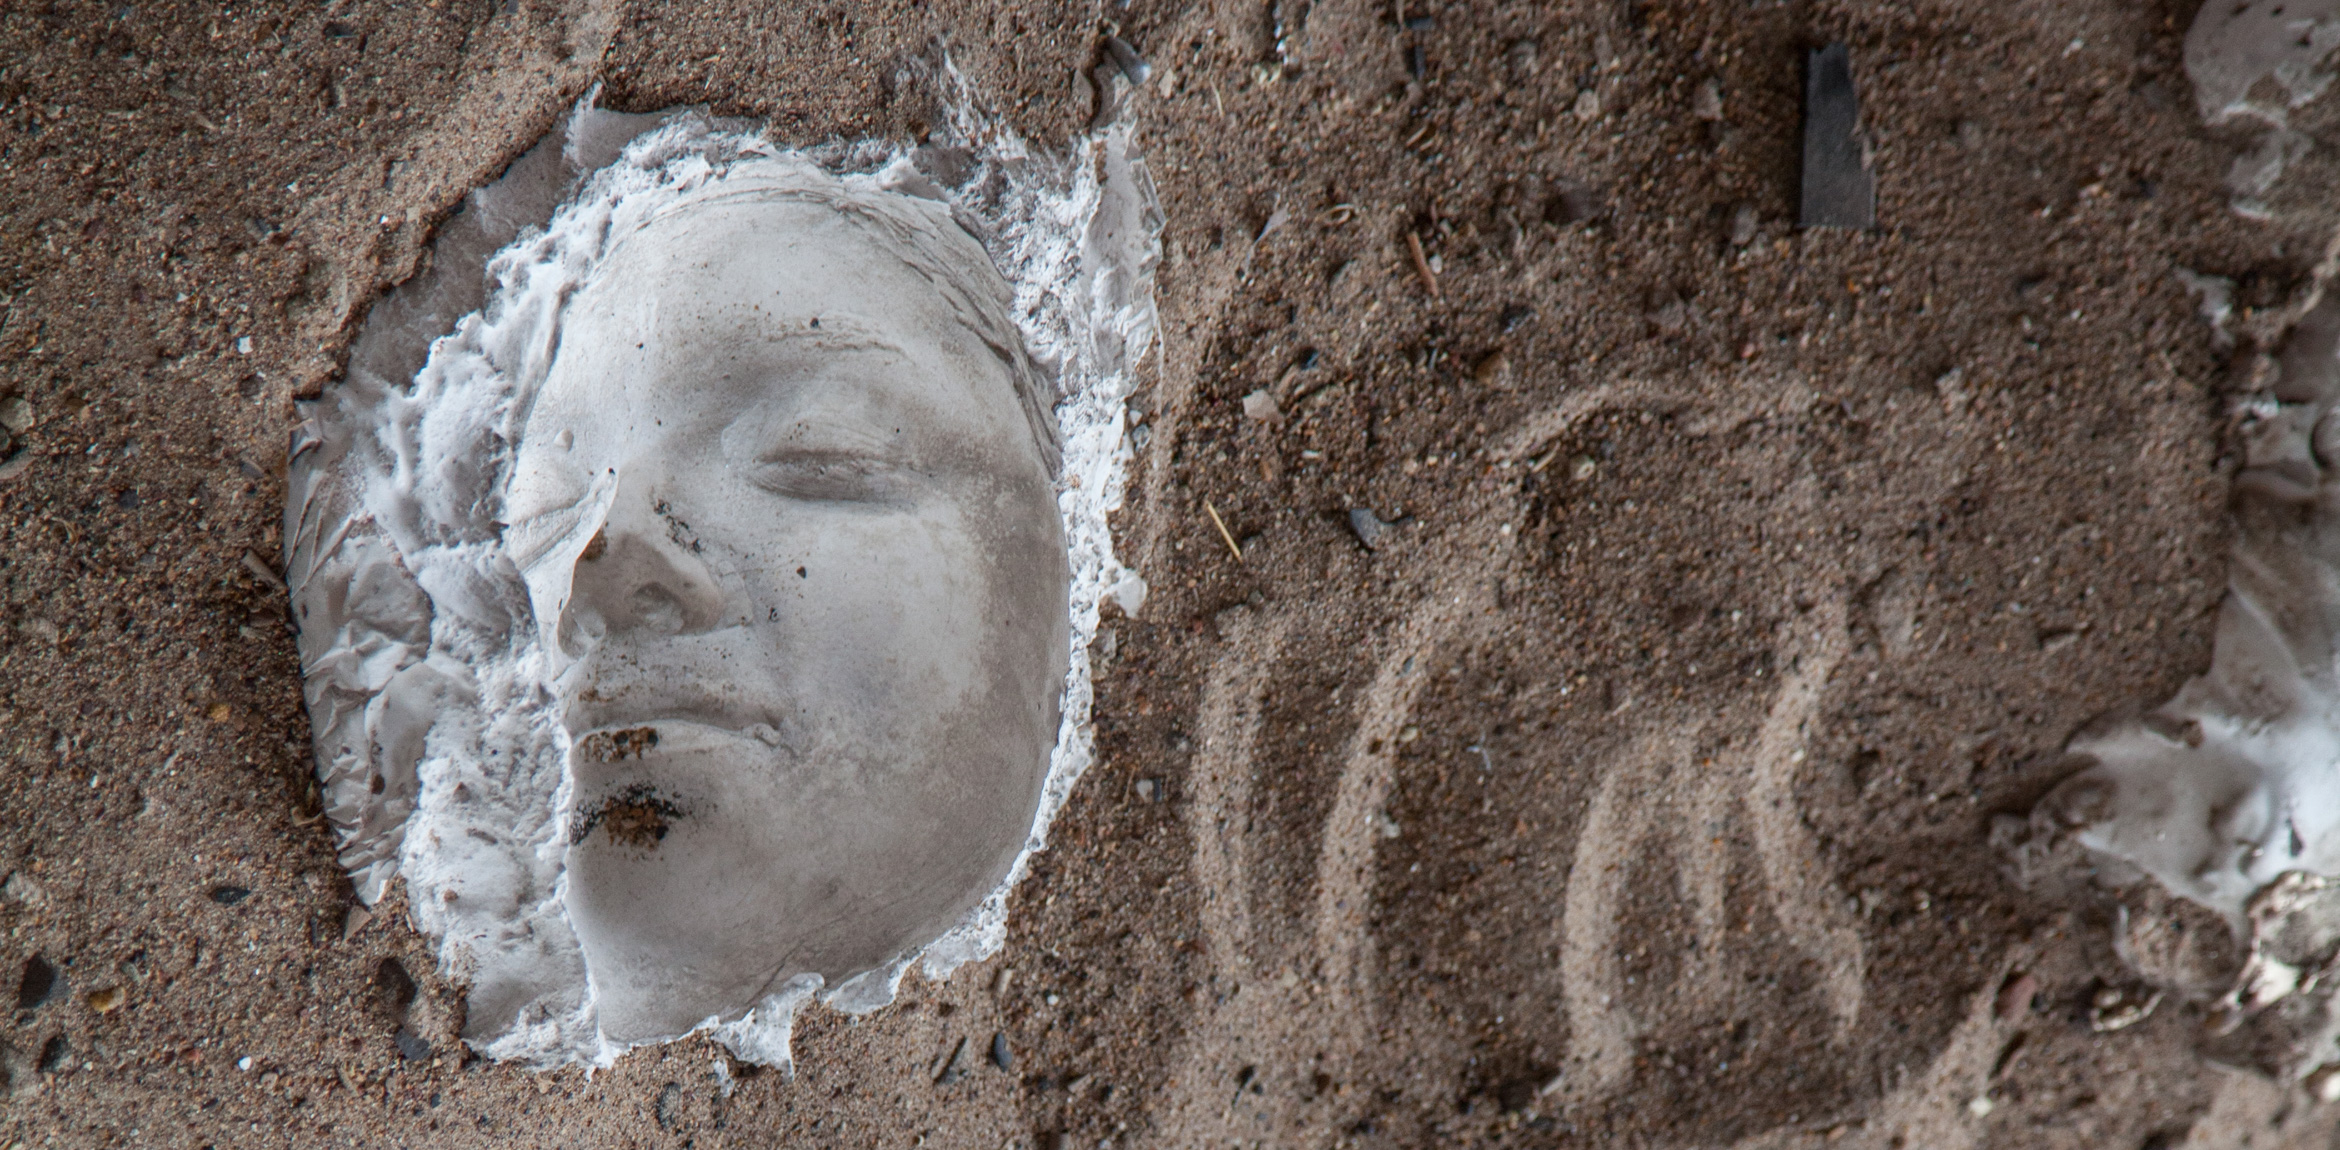 A closeup of a plaster sculpture of a face surrounded by dirt and sand.